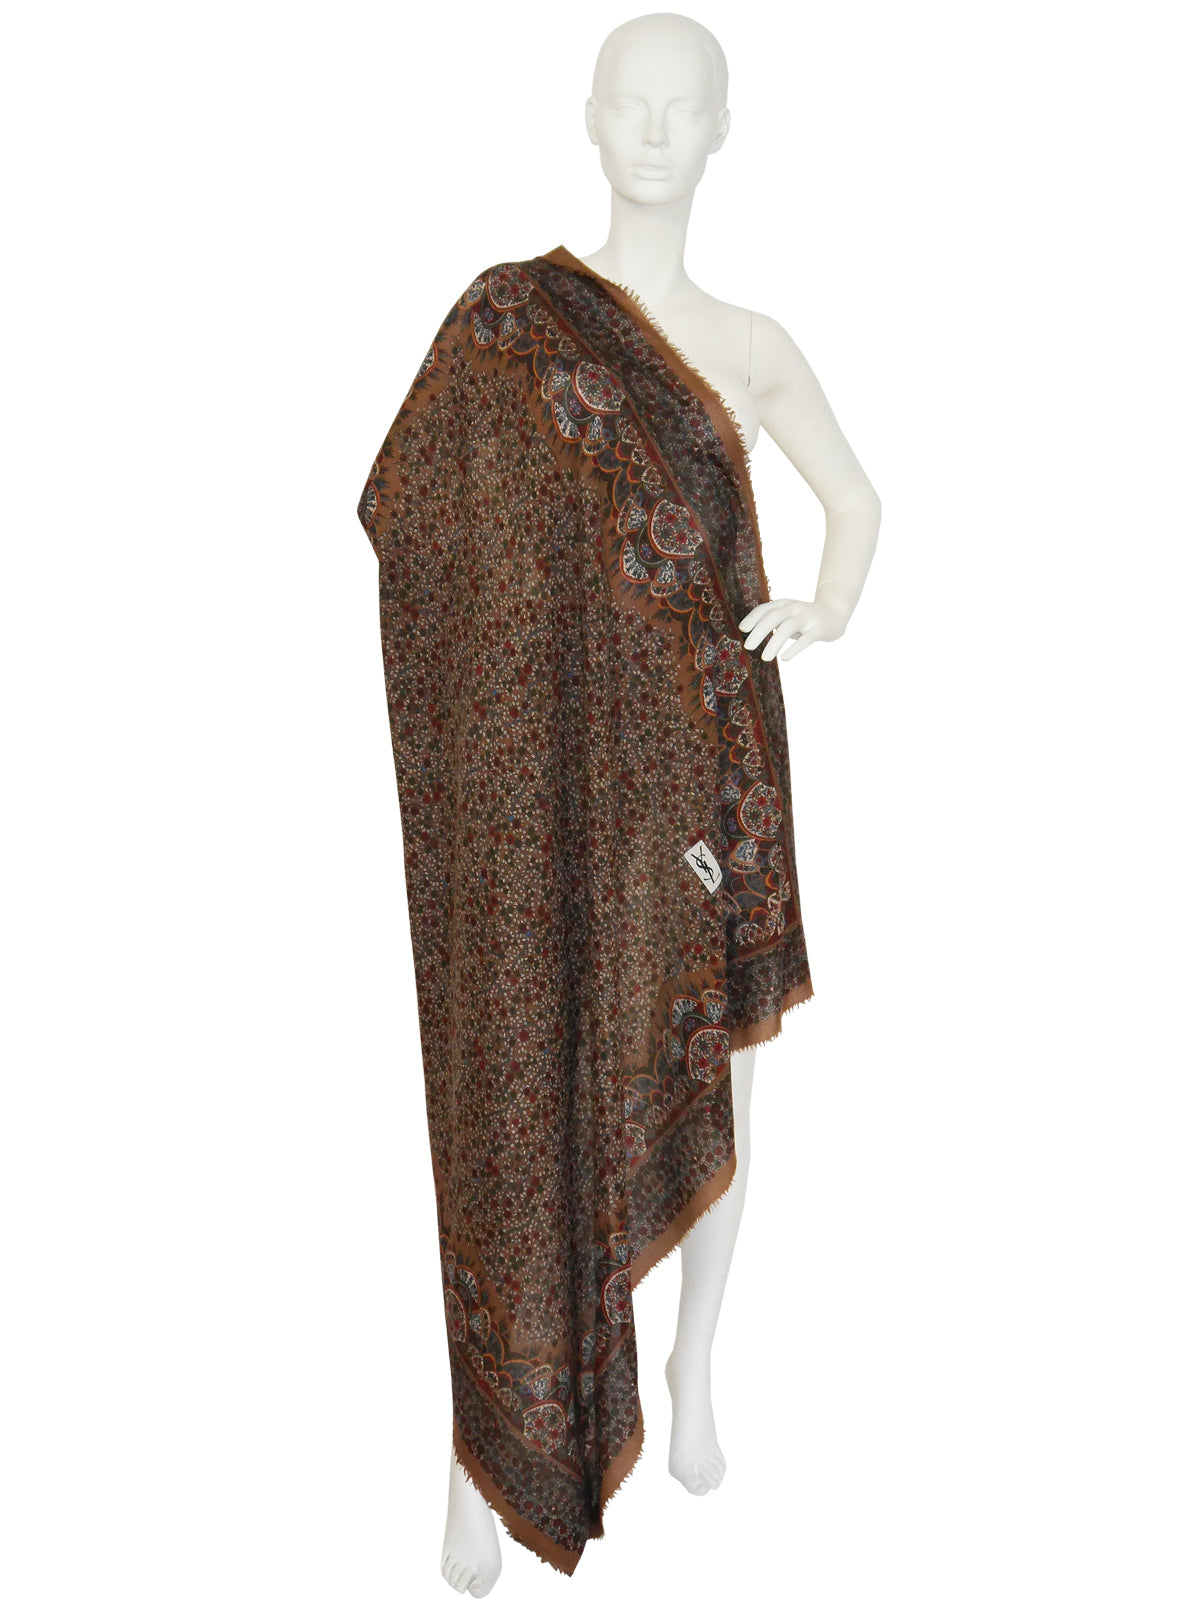 Sold - YVES SAINT LAURENT Huge Printed Wool Scarf Brown 128 x 126 cm